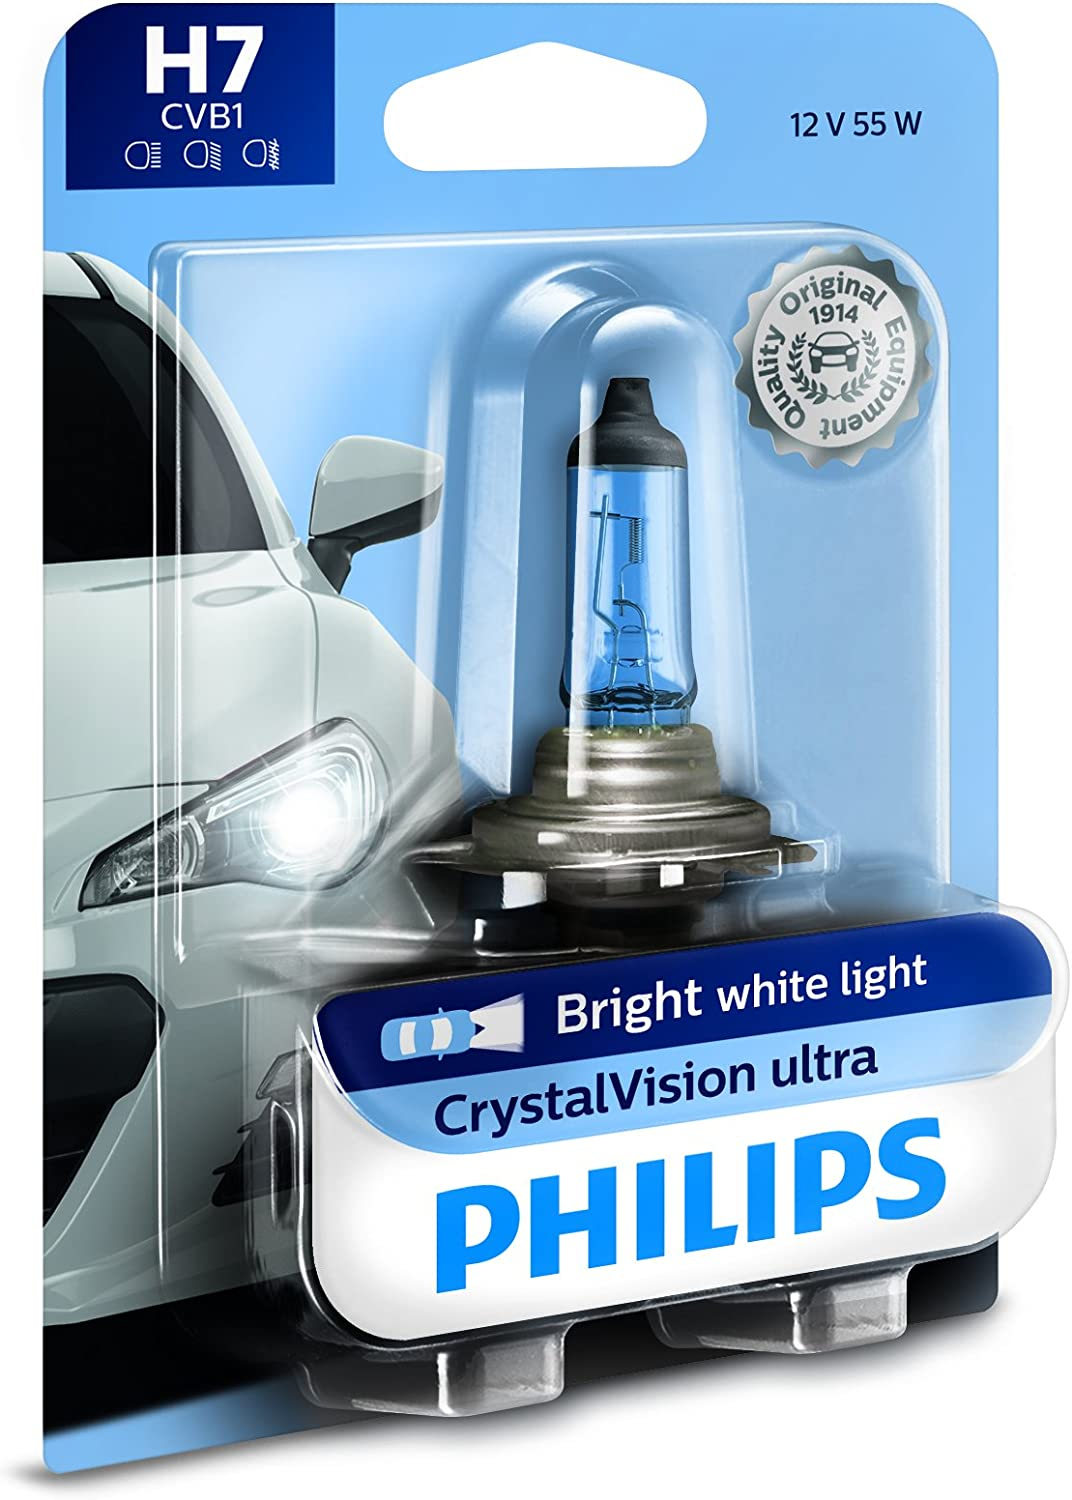 Philips H7 CrystalVision Ultra Upgrade Bright White Headlight Bulb